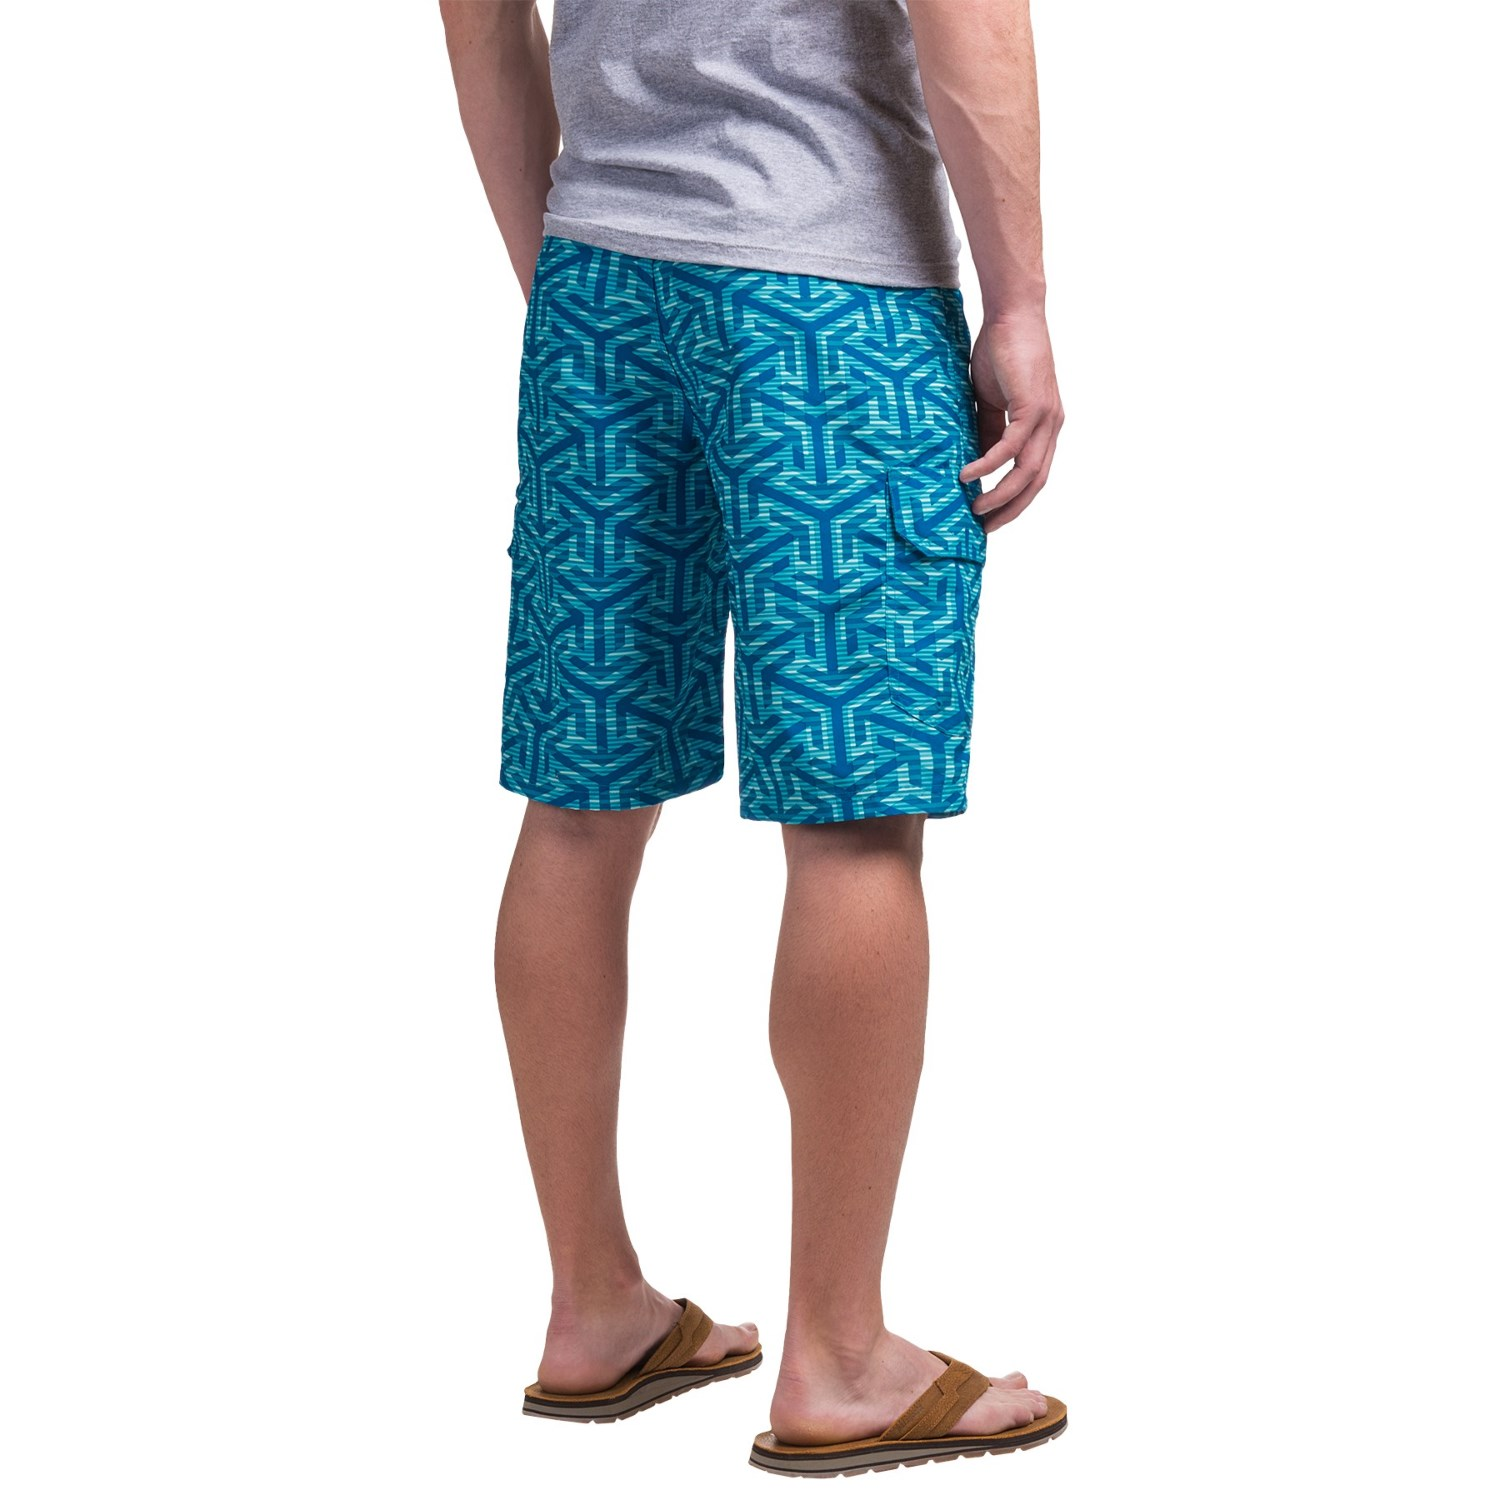 Men's Shorts Premium fabrics and durability, our shorts offer a variety of cuts, lengths and styles so everyone can find their perfect fit.